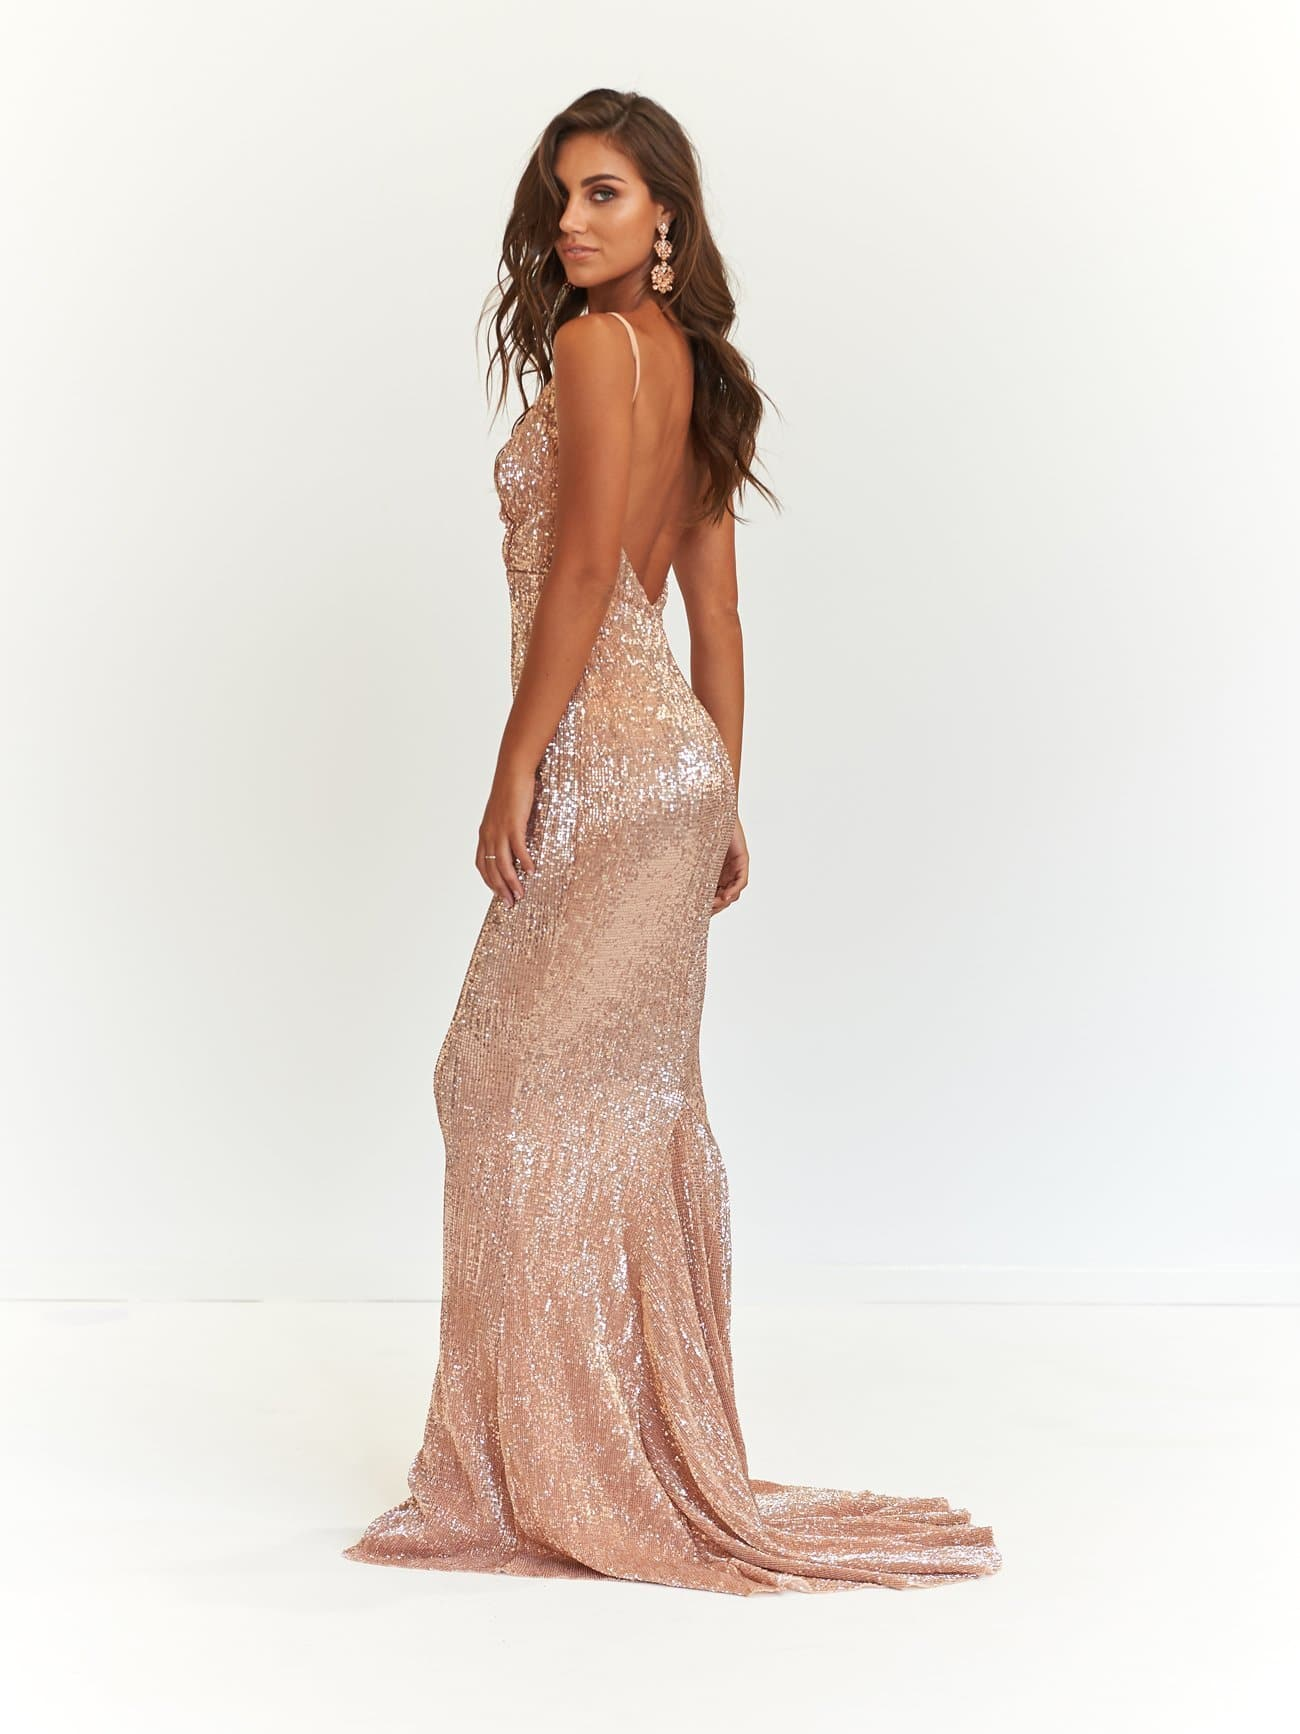 Cynthia Formal Dress - Rose Gold Sparkling V Neck Low Back Maxi Gown